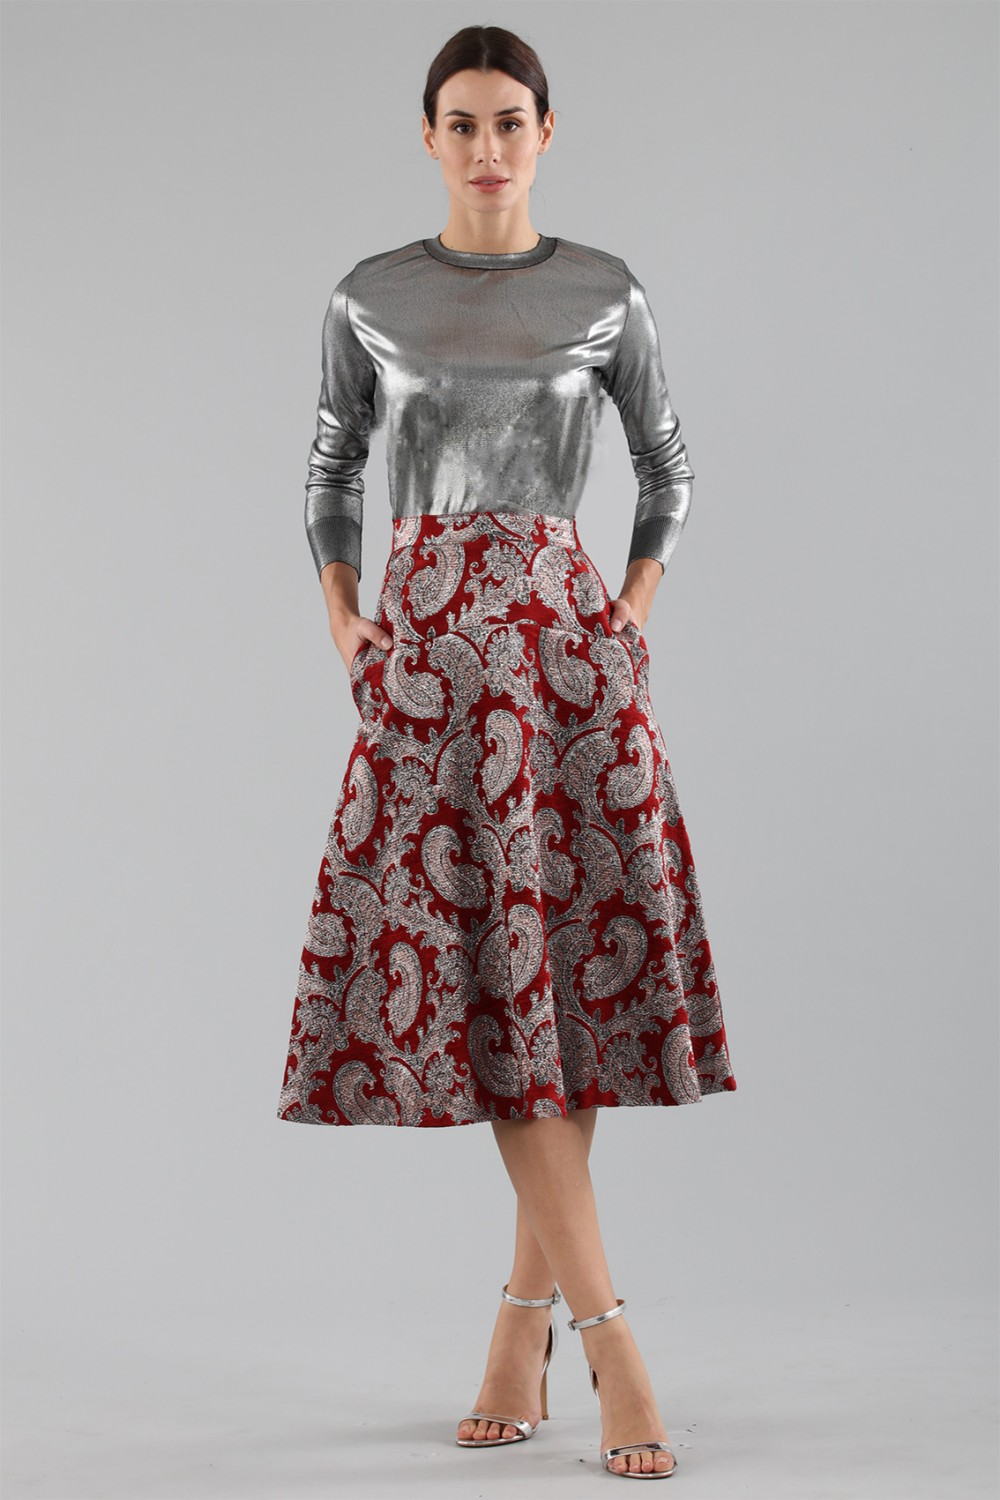 Burgundy skirt with brocaded silver pattern